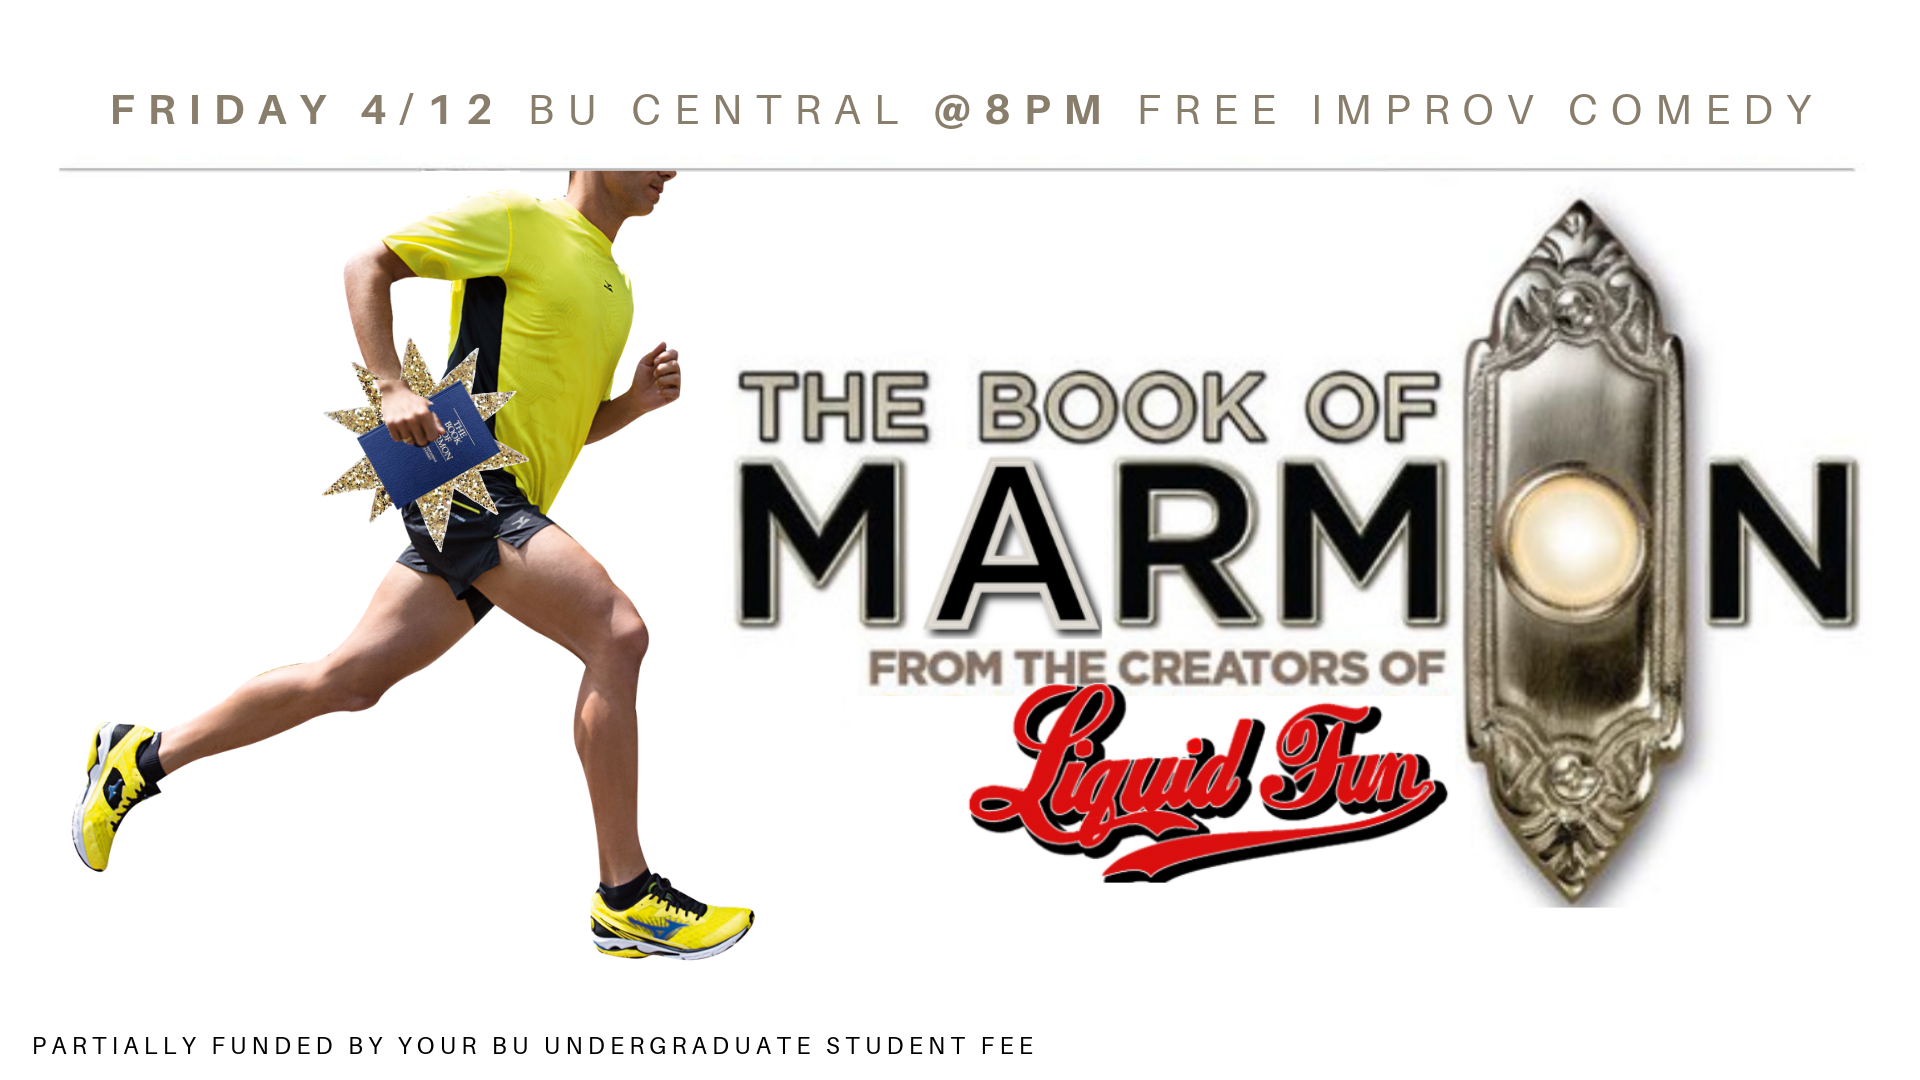 The Book of MarMon